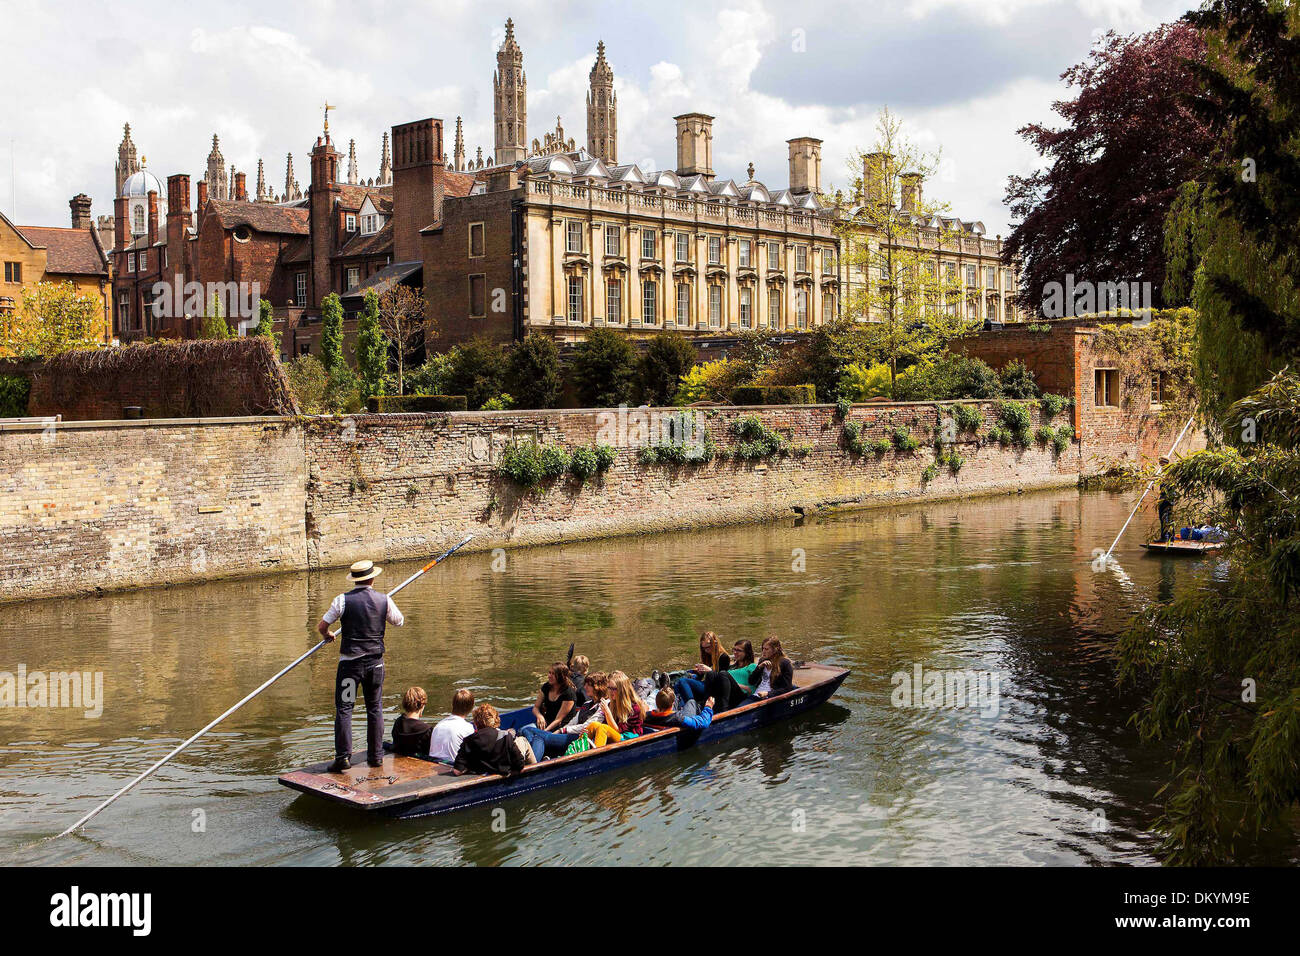 Groups of people punt down the River Cam in Cambridge, past Kings College today, Thursday in the spring sunshine, May 16 2013. - Stock Image